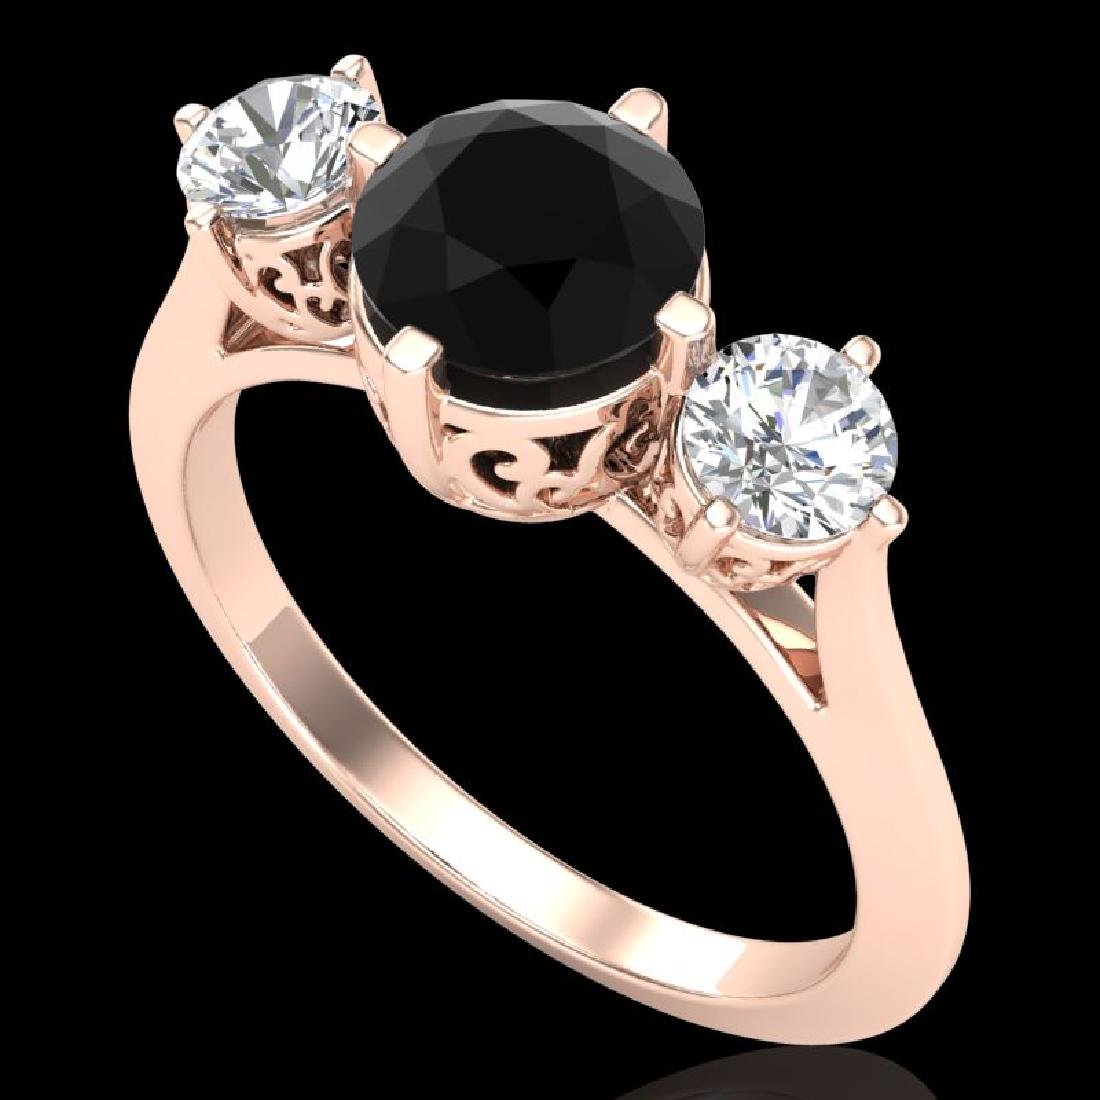 1.51 CTW Fancy Black Diamond Solitaire Art Deco 3 Stone